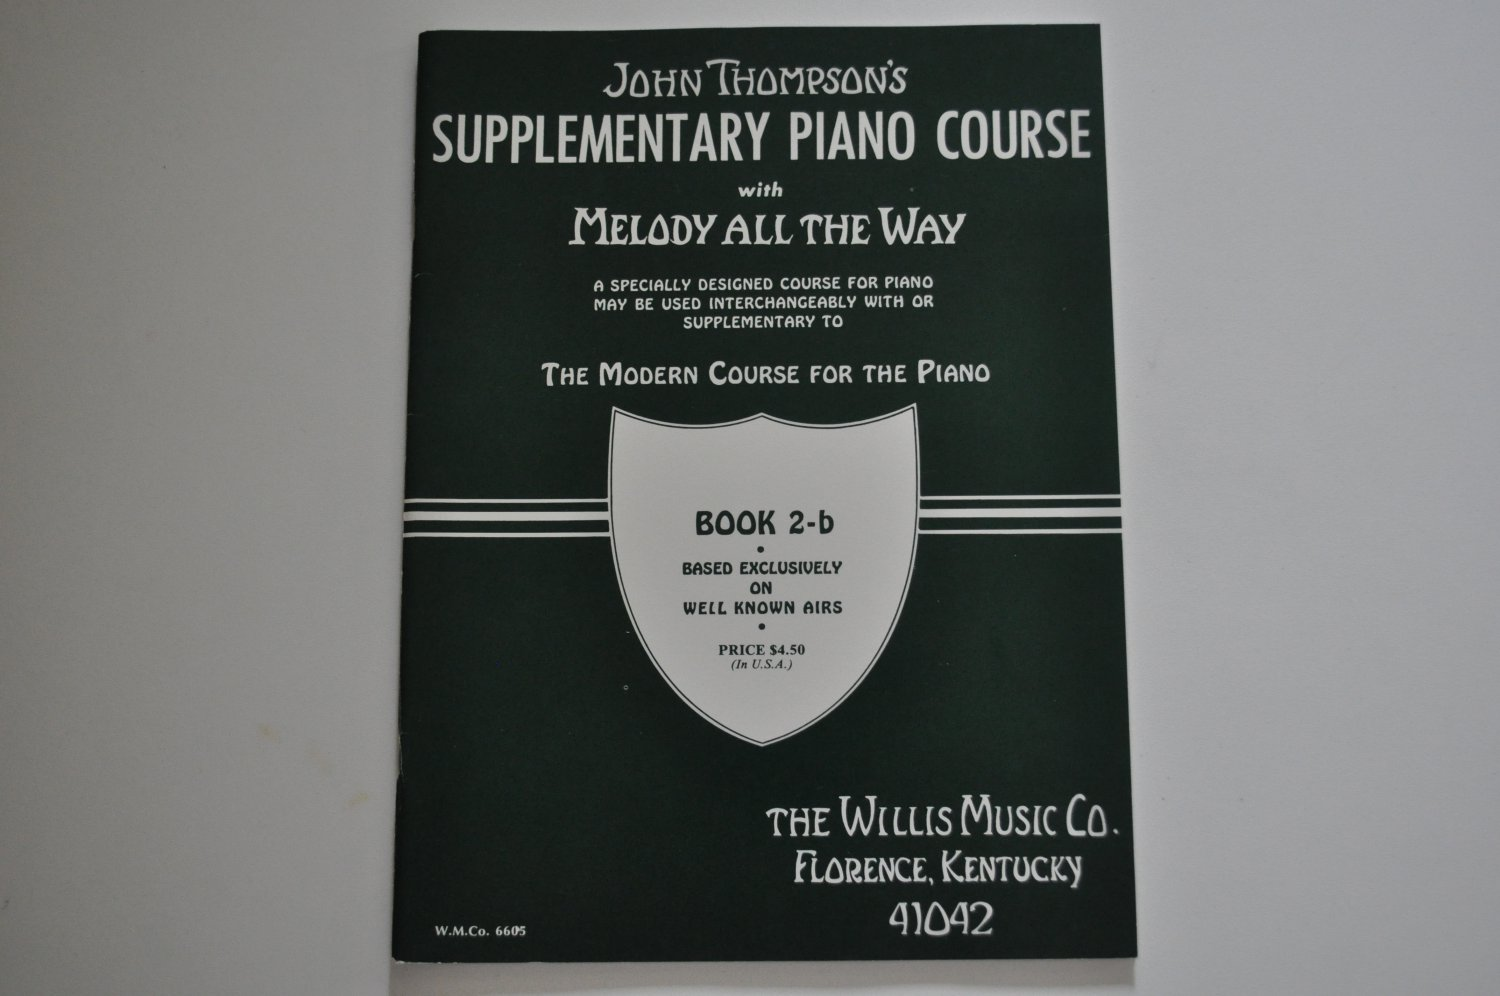 John Thompson's Supplementary Piano Course (with Melody All the Way) - book 2-b